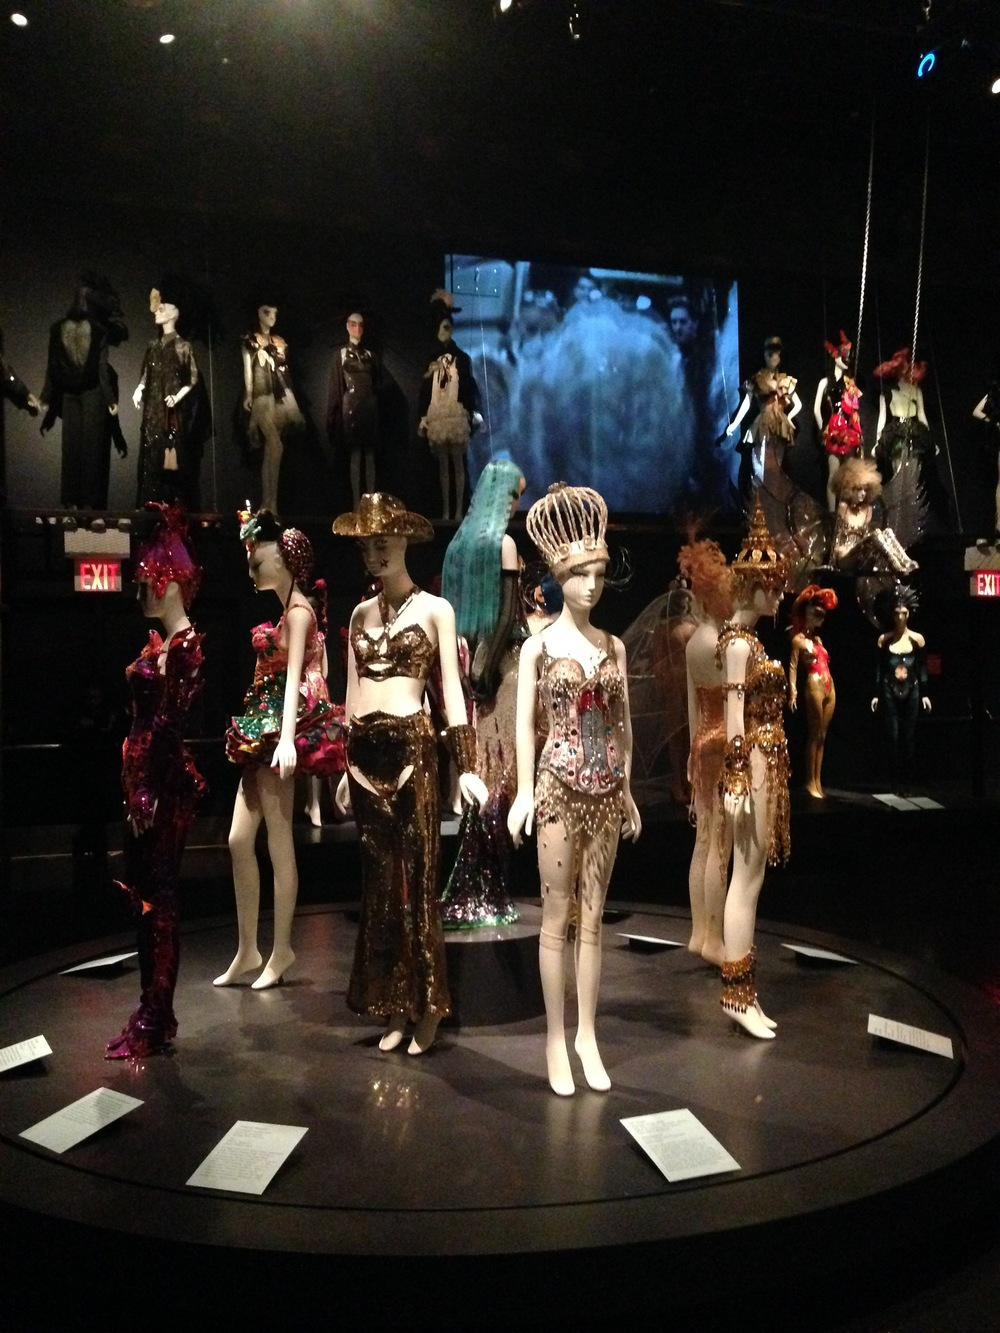 Installation view of 'Fashion Underground: The World of Susanne Bartsch', The Museum at FIT.